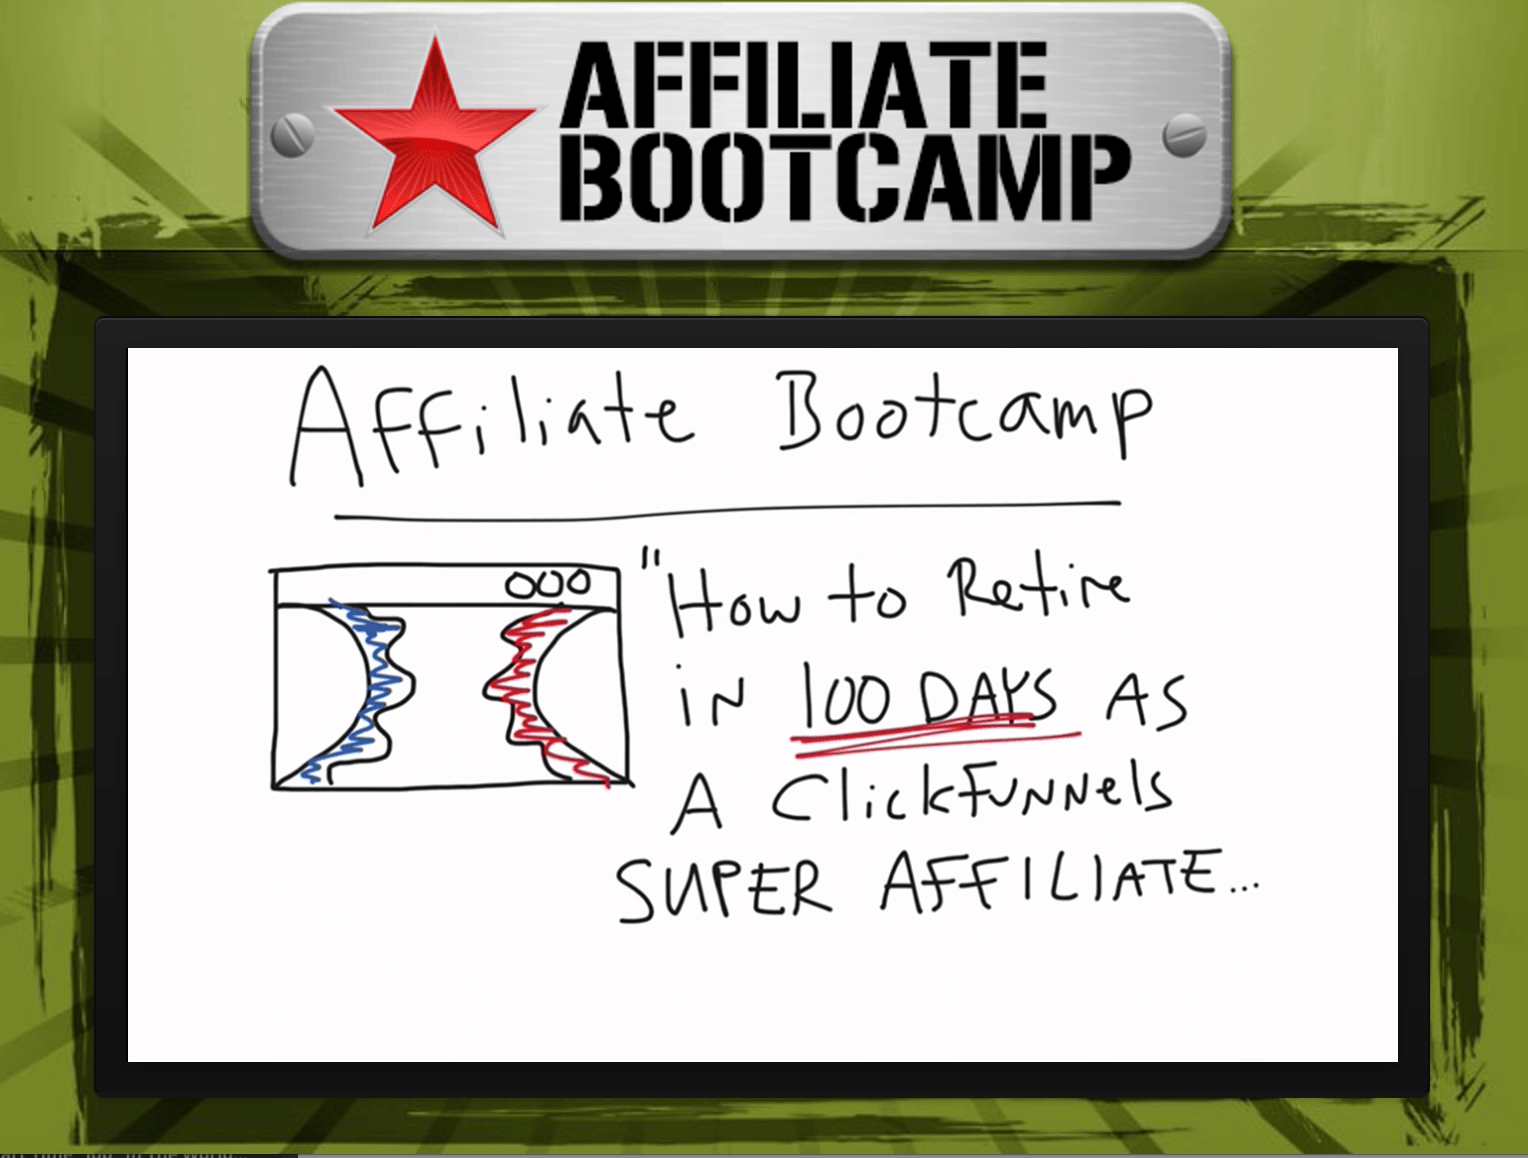 ClckFunnels 100 Day Affiliate Bootcamp